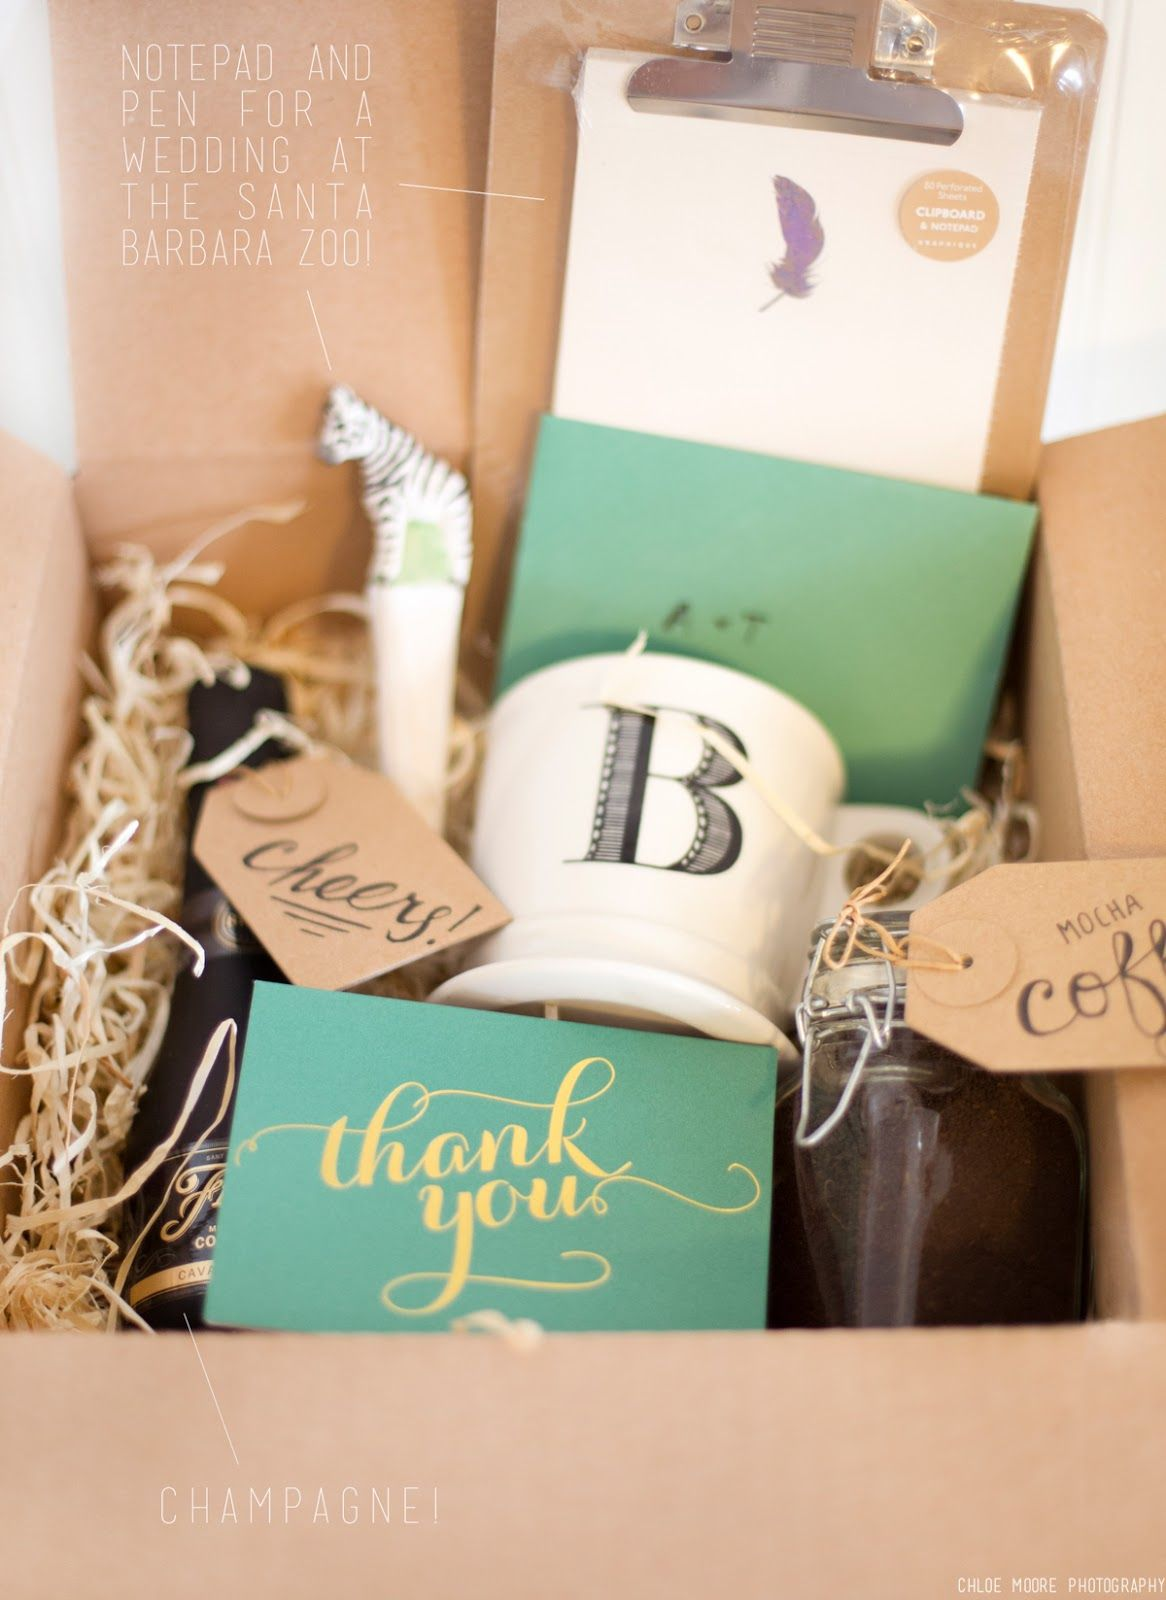 Chloe Moore Photography // The Blog: New Client Gift Packages ...